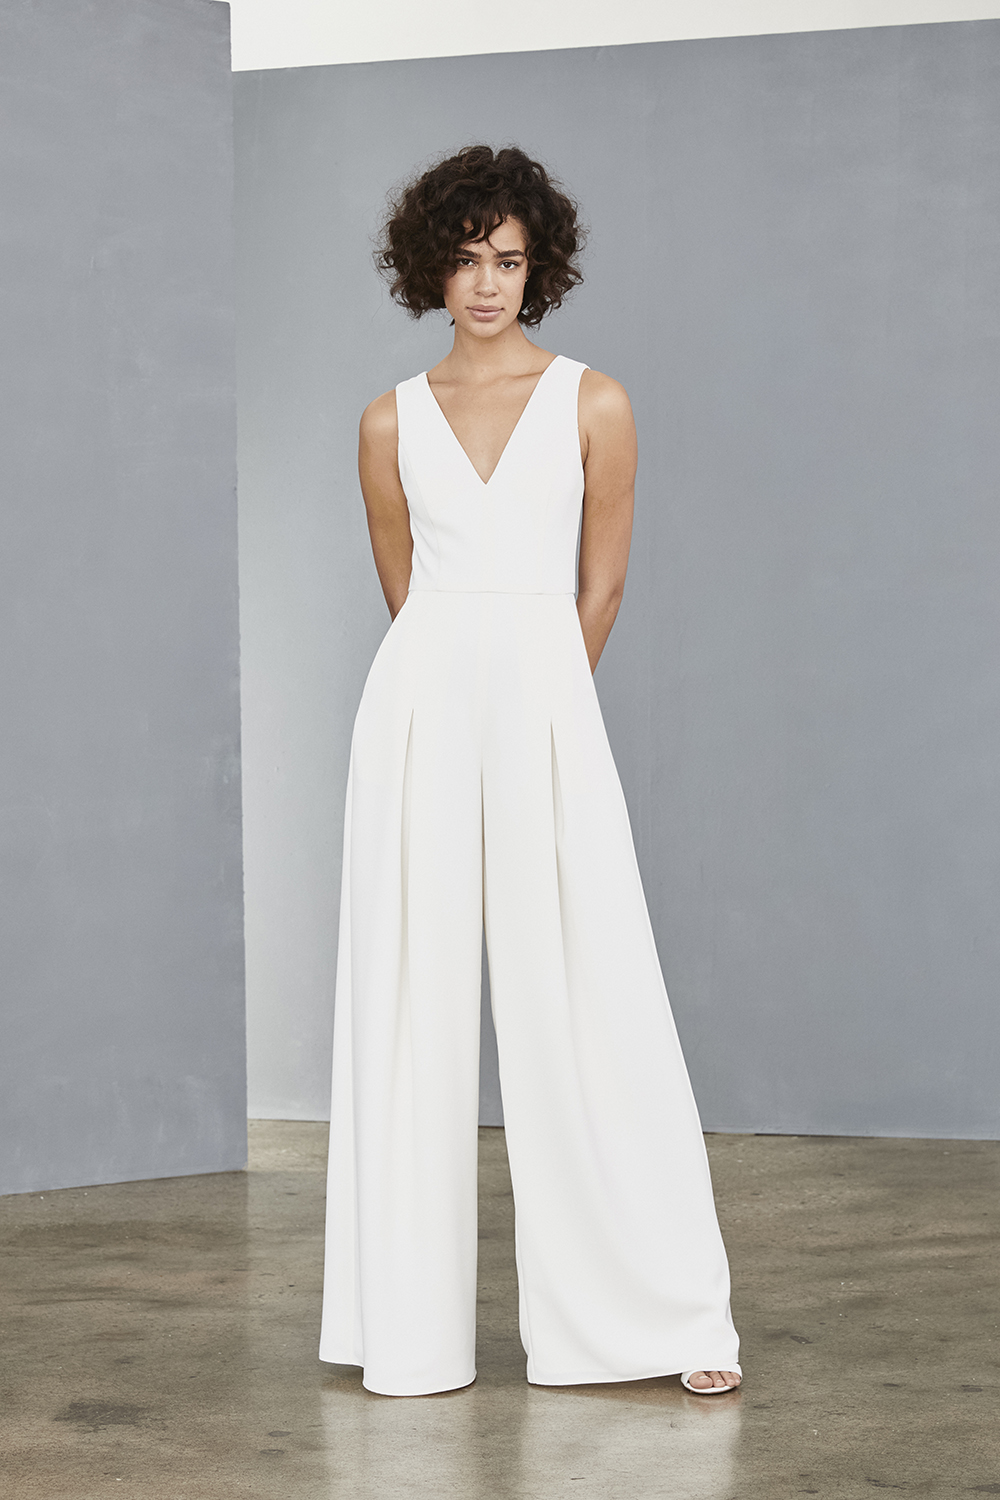 Jumpsuit style LW136 in ivory by Amsale Little White Dresses